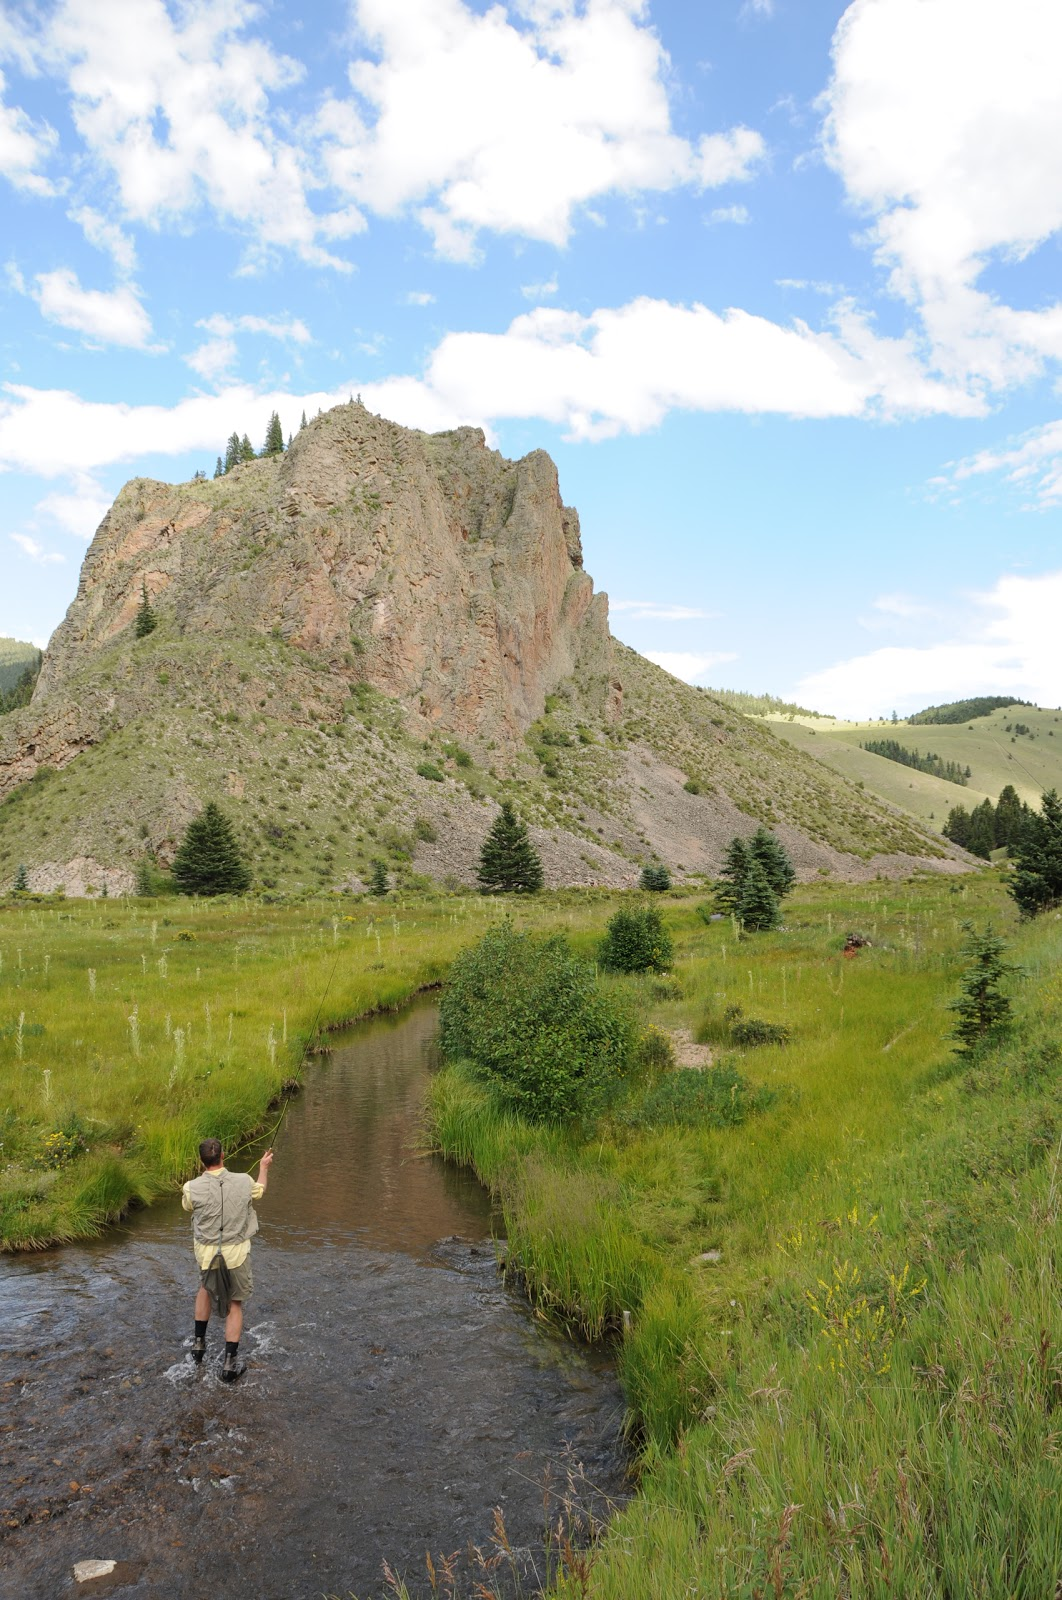 Flyfishing valle vidal new mexico for Fly fishing new mexico